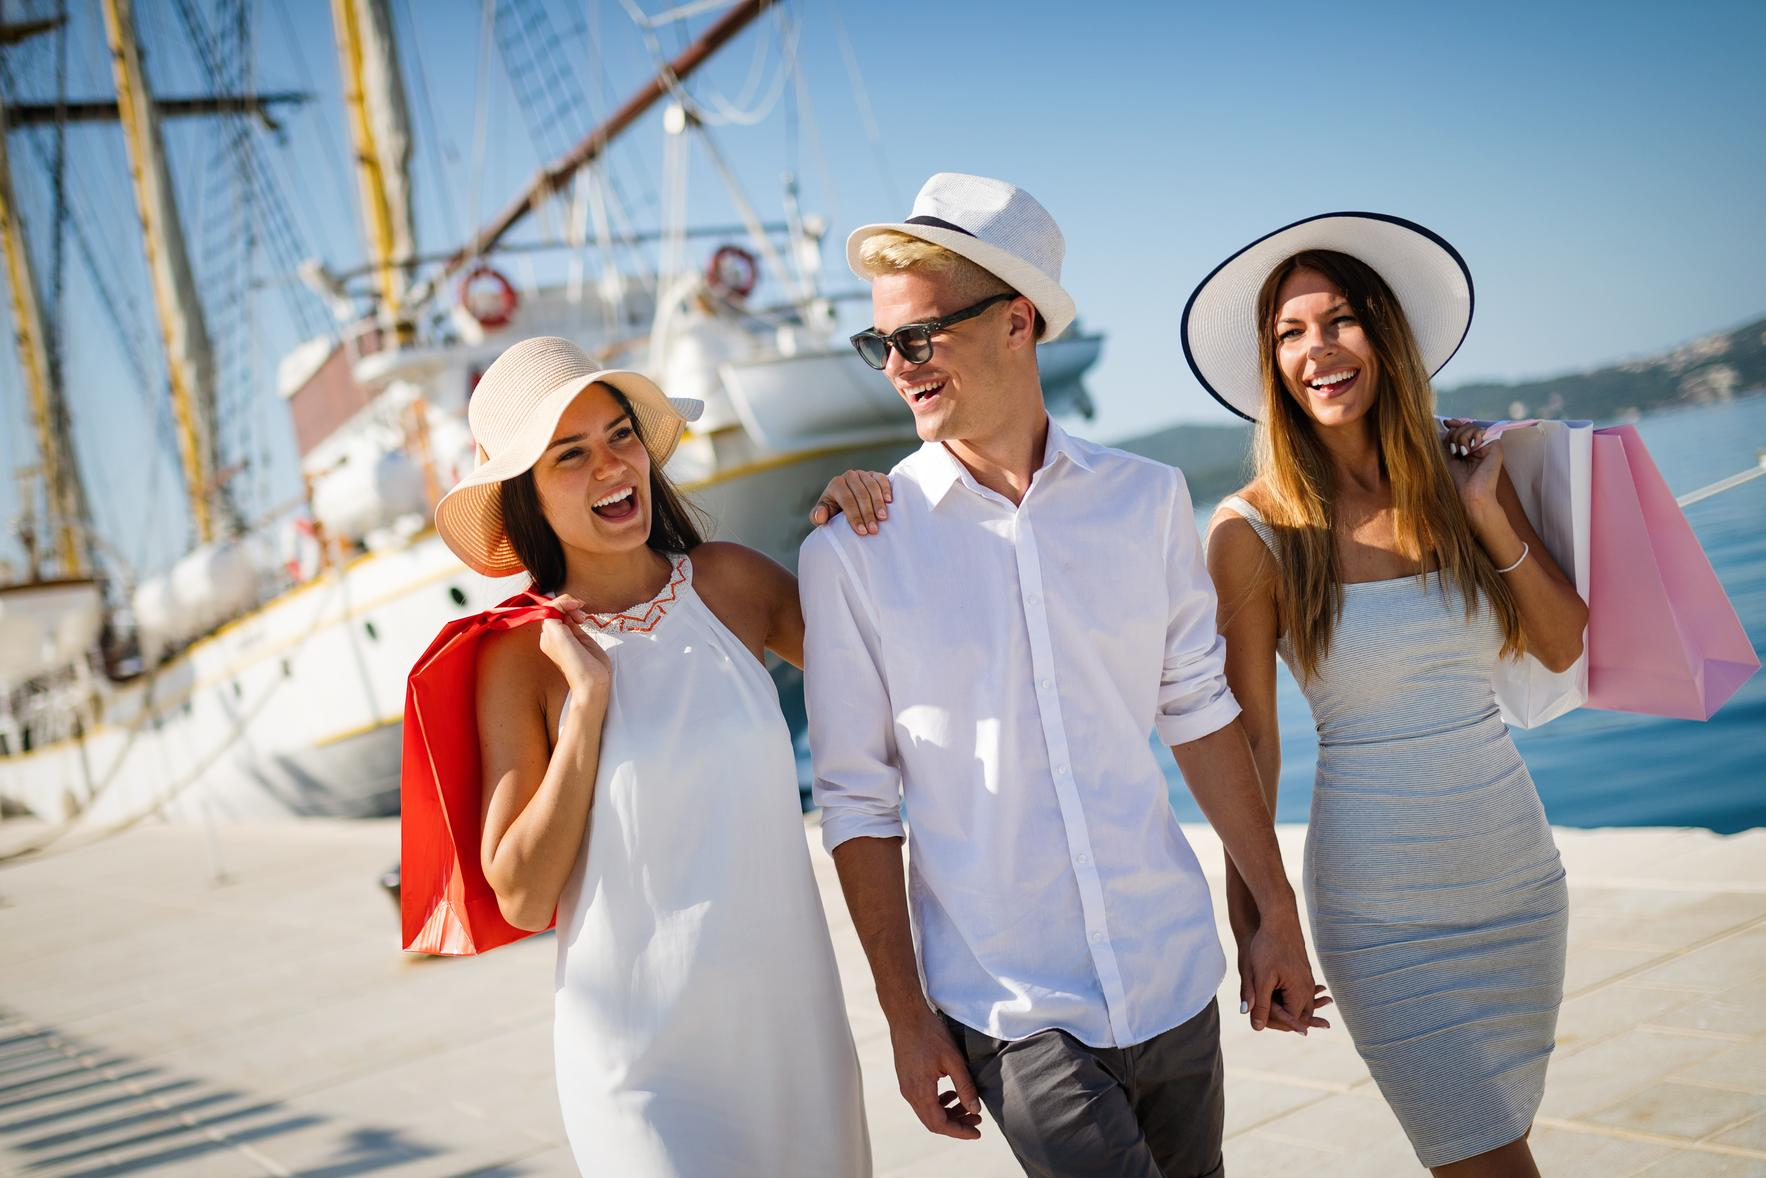 Boating Gifts - Holiday Present Ideas For Boaters